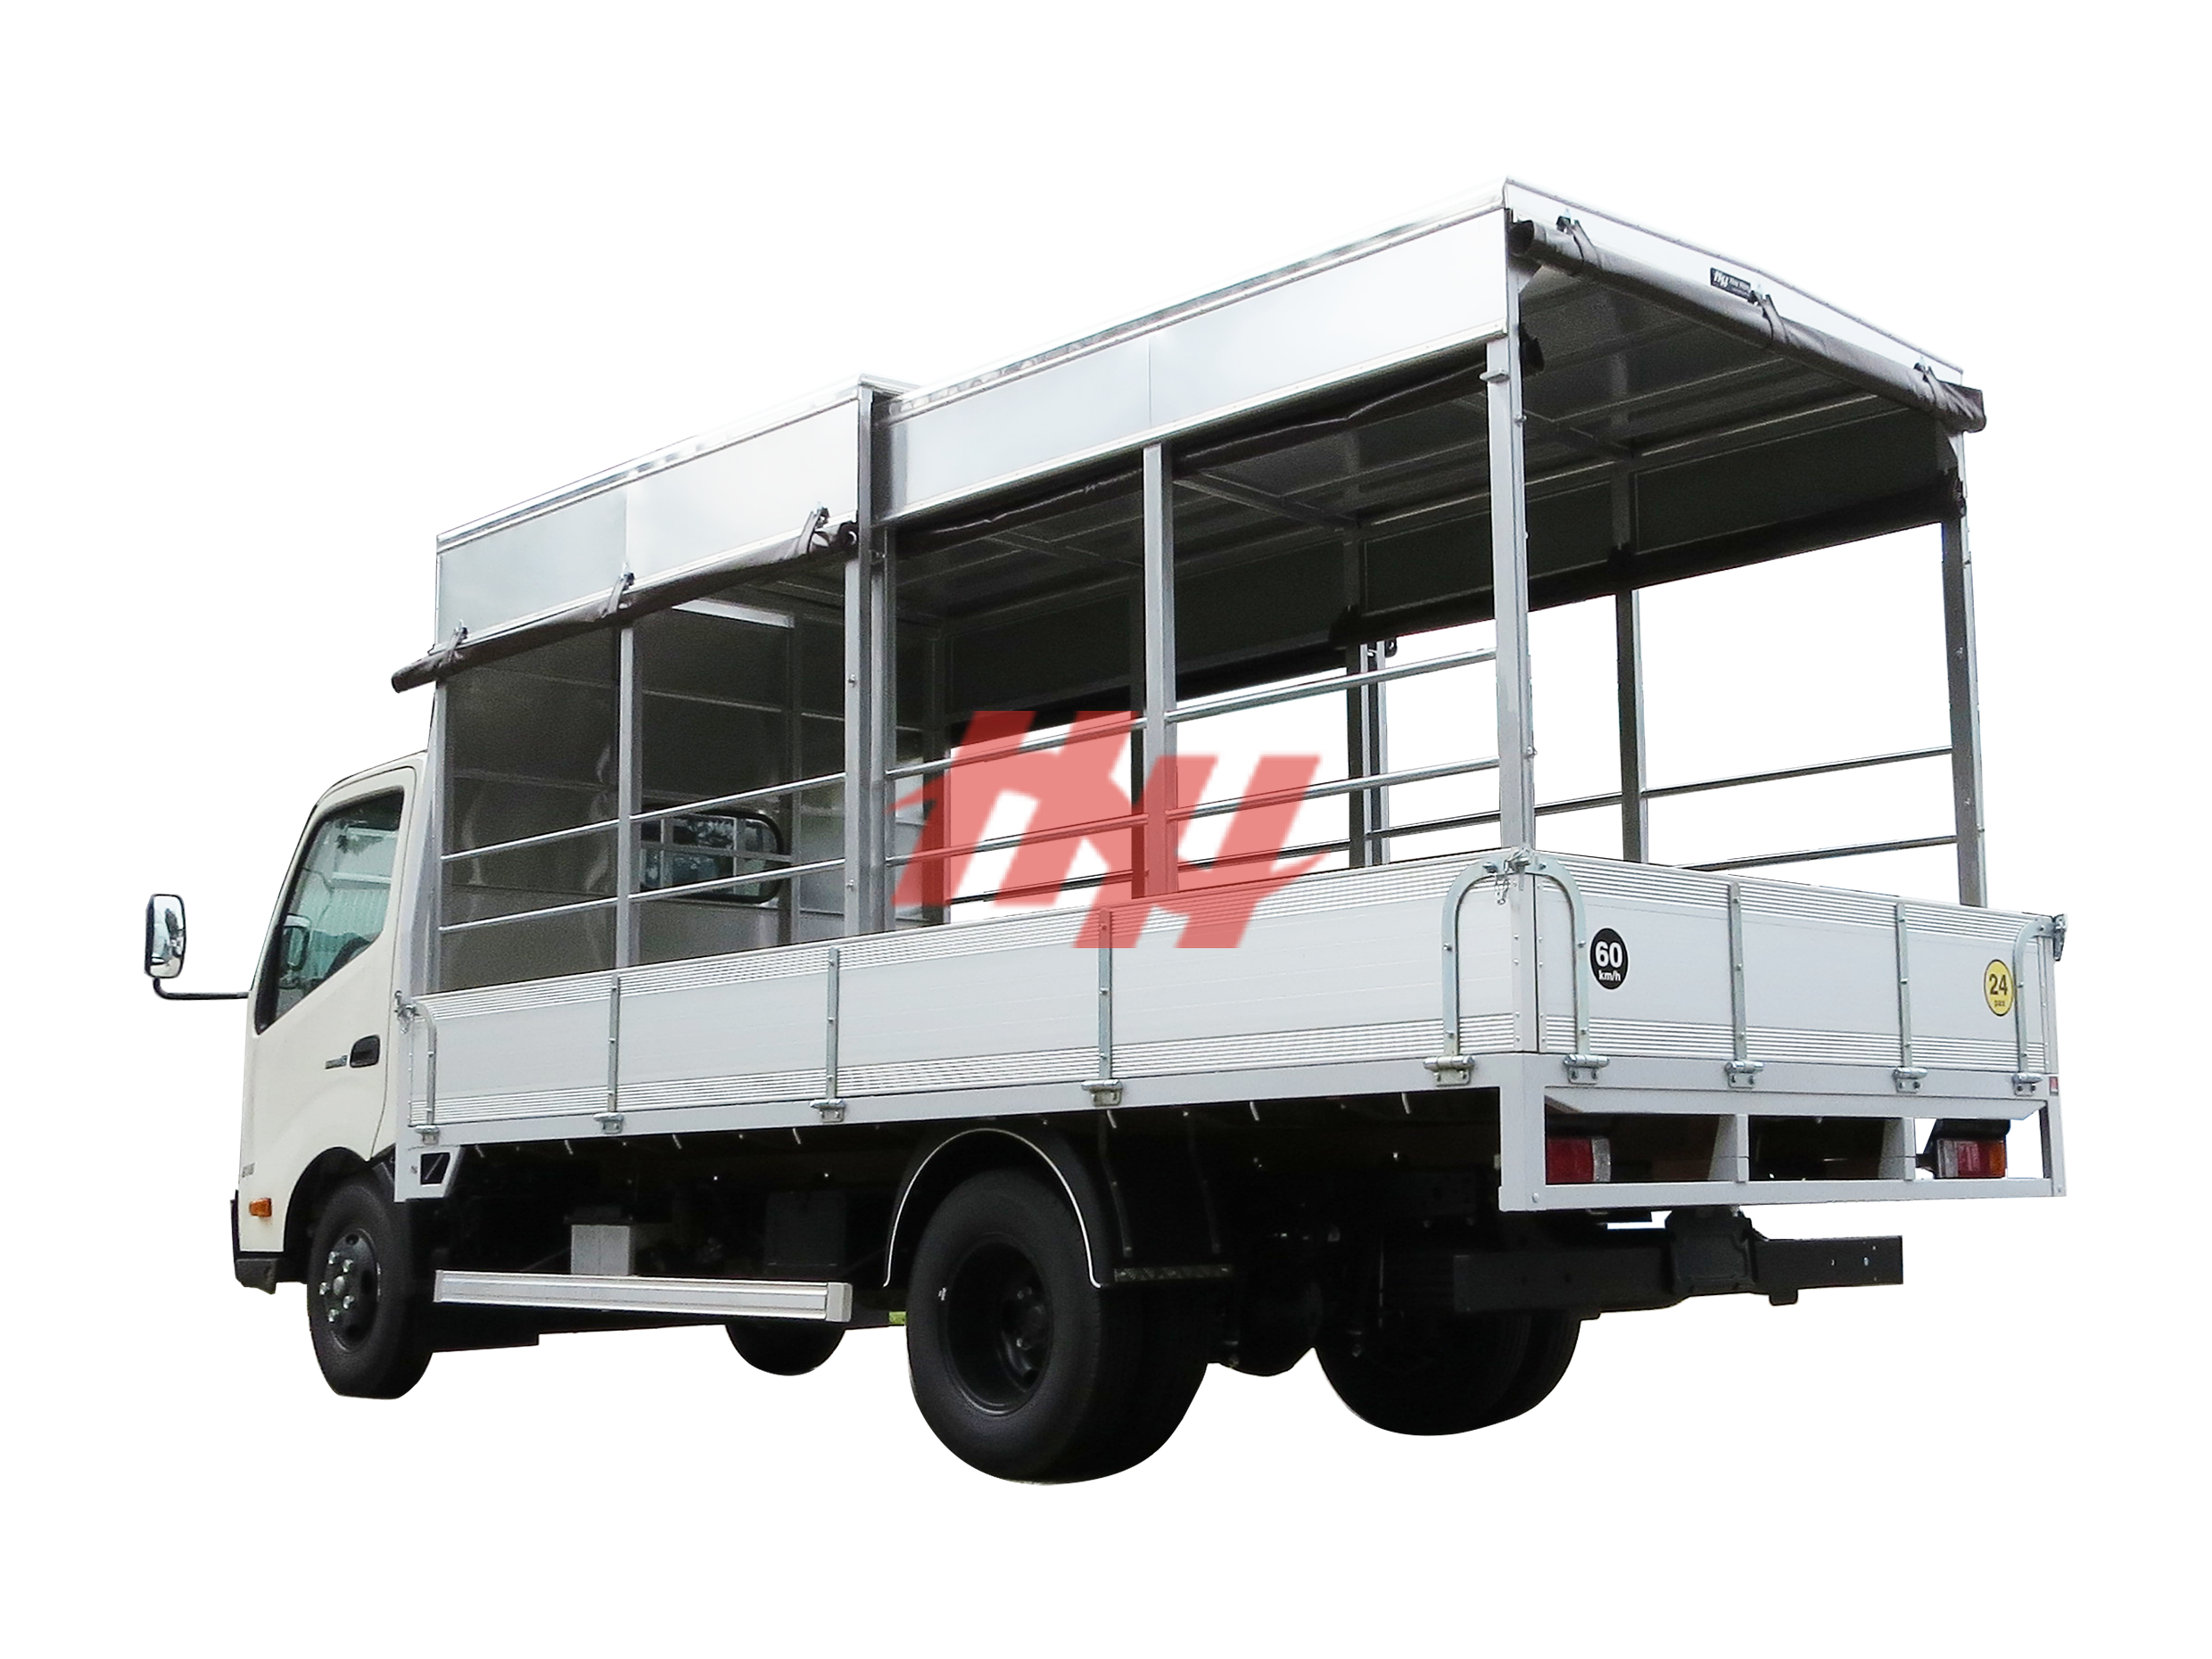 High roof full length retractable canopy on aluminium body with roll down canvas  galvanished hinges and side guard